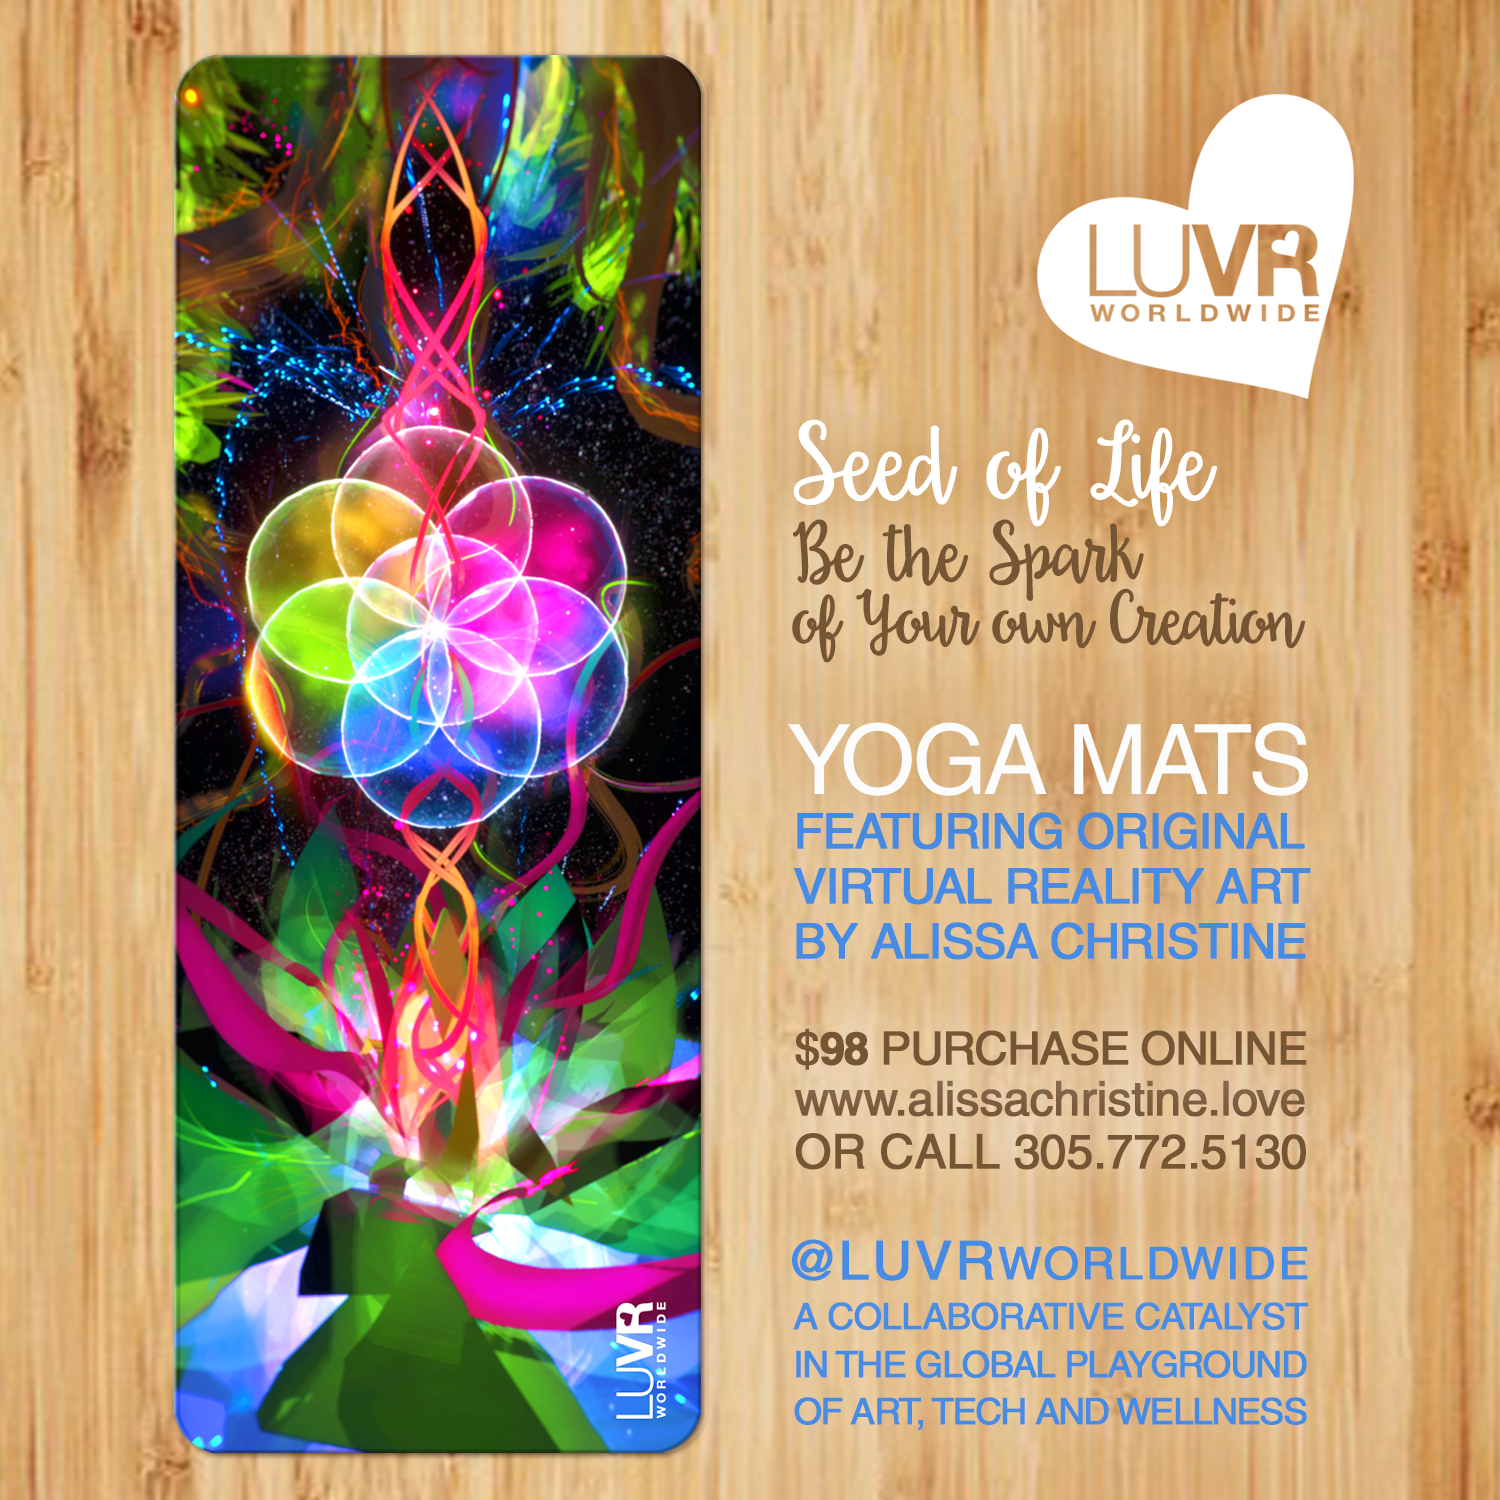 LUVR-seed-of-life-yogamat-flyer-4.png